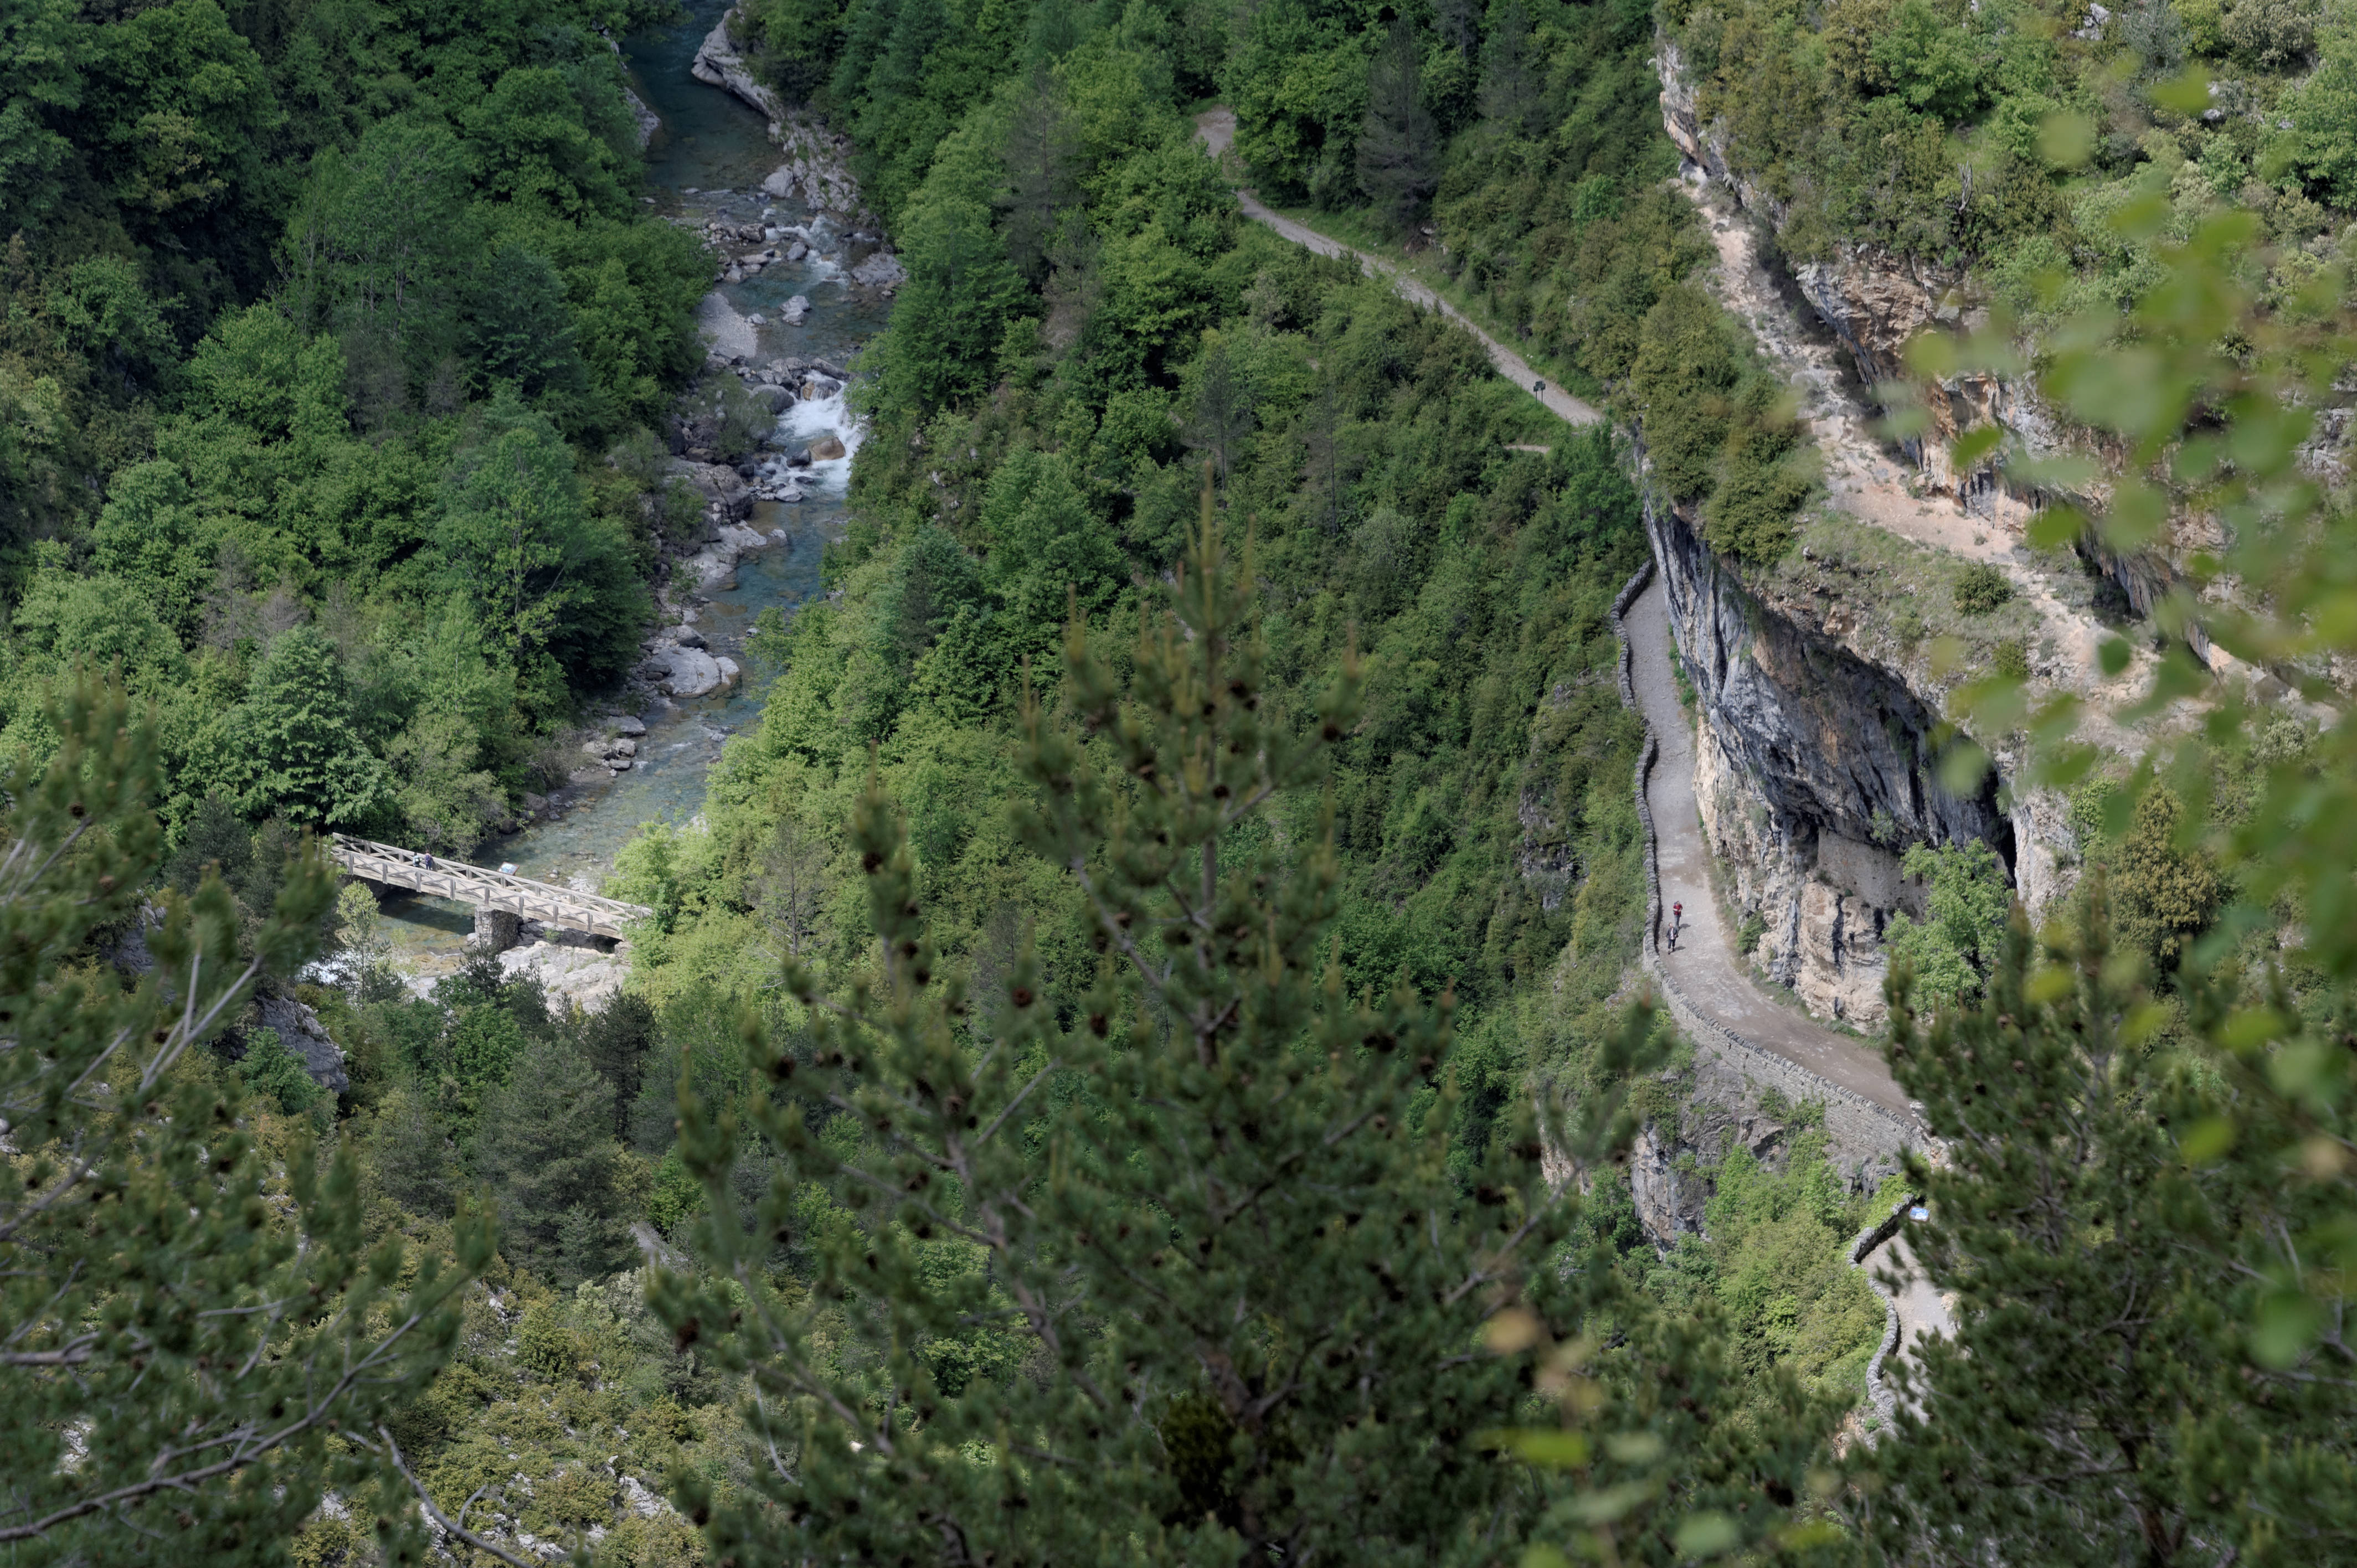 6621_Canyon d'Anisclo (Sobrarbe)